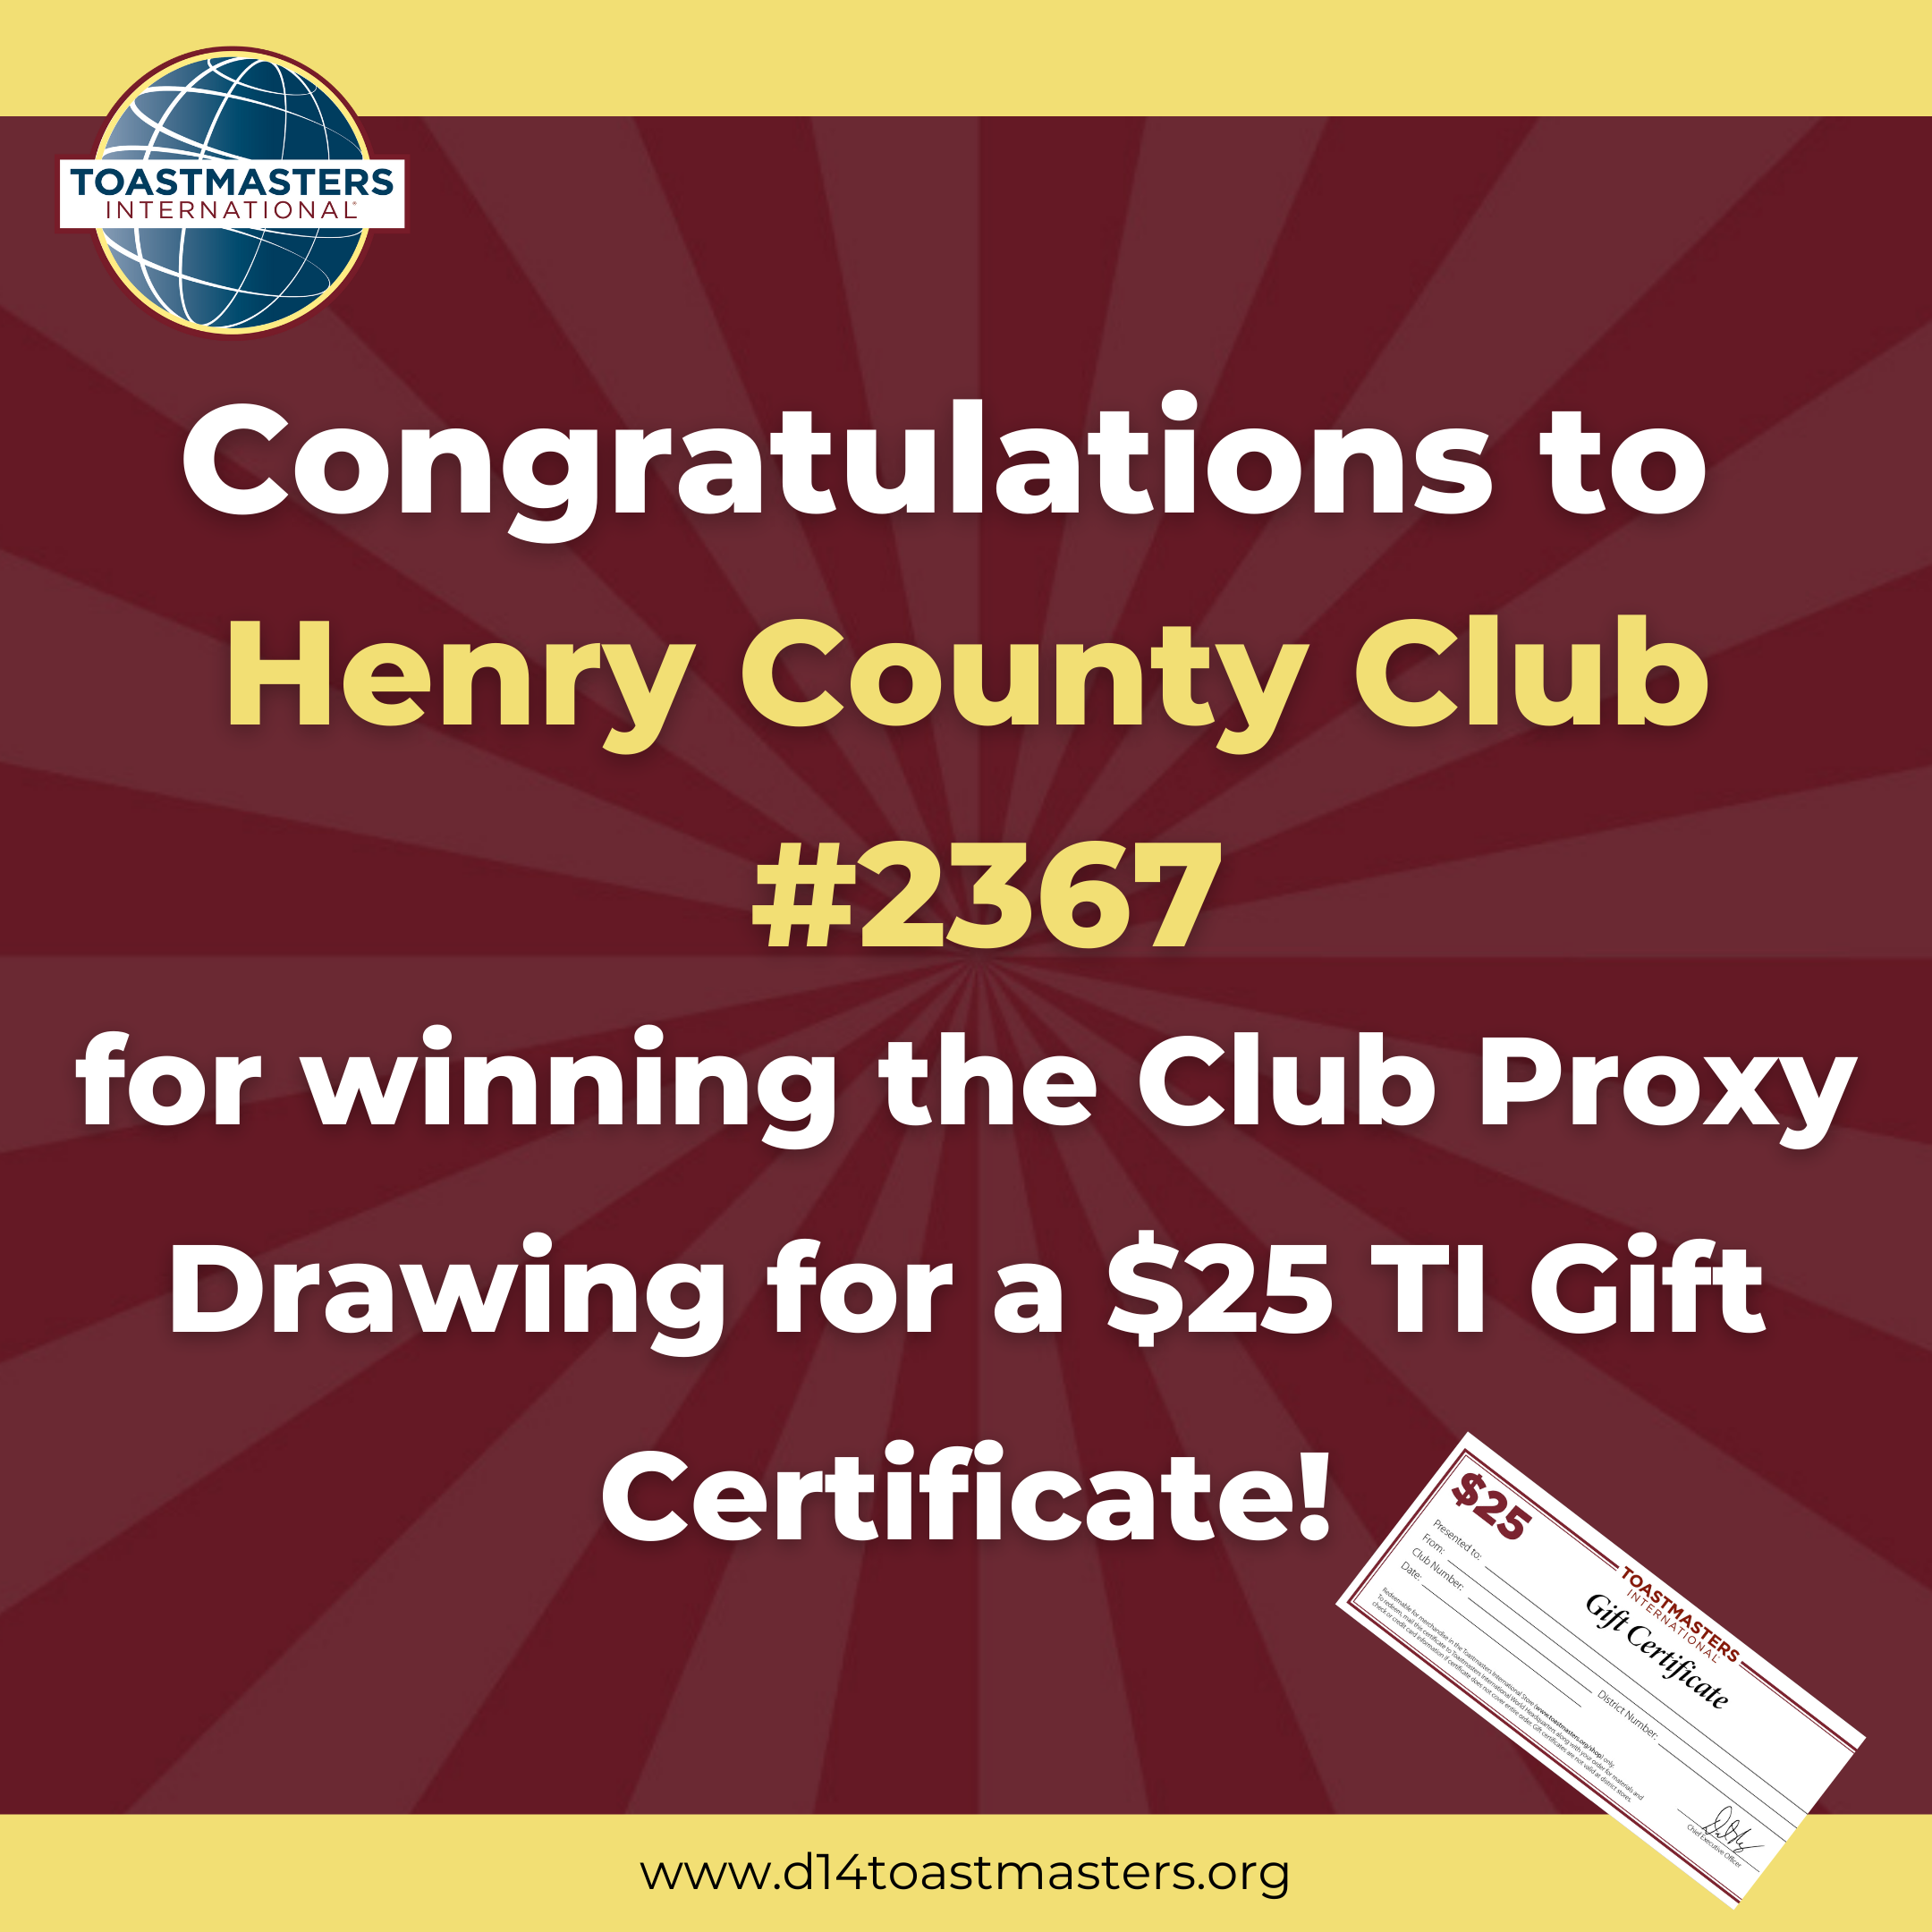 Congratulations to Henry County Club #2367 for winning the Club Proxy Drawing for a $25 TI Gift Certificate!